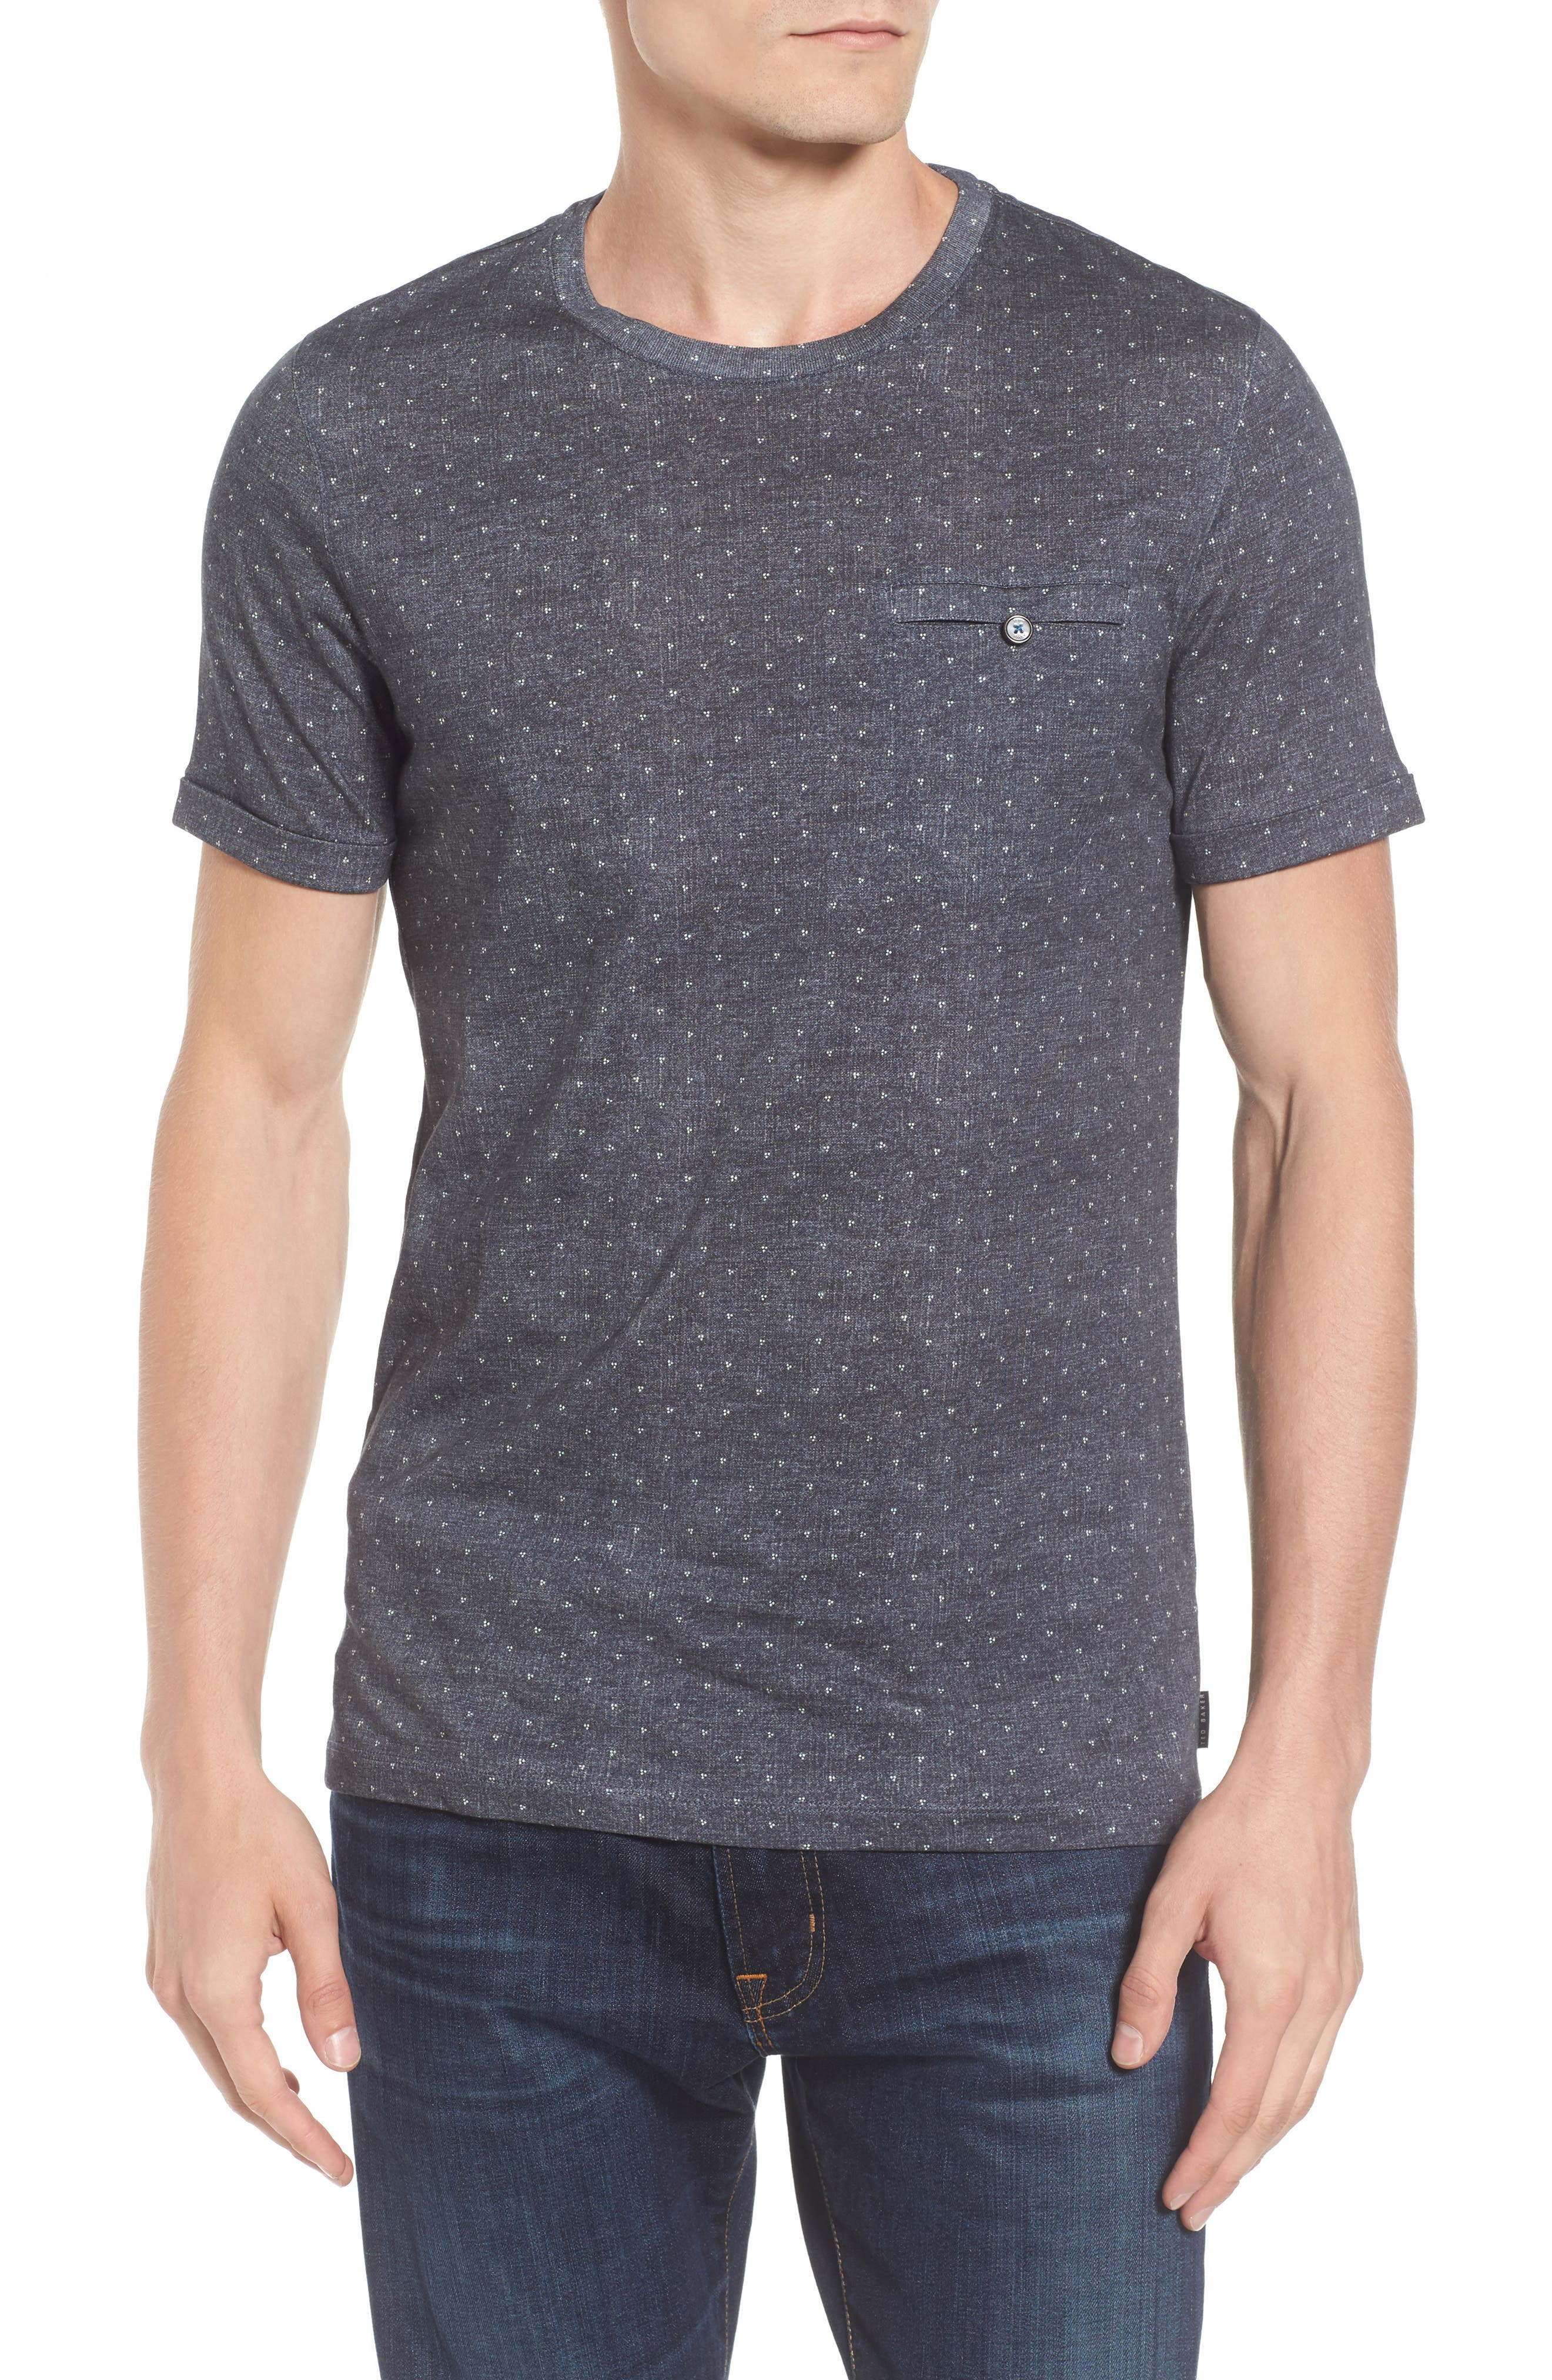 Giovani Modern Slim Fit Print T-Shirt,                             Main thumbnail 1, color,                             410